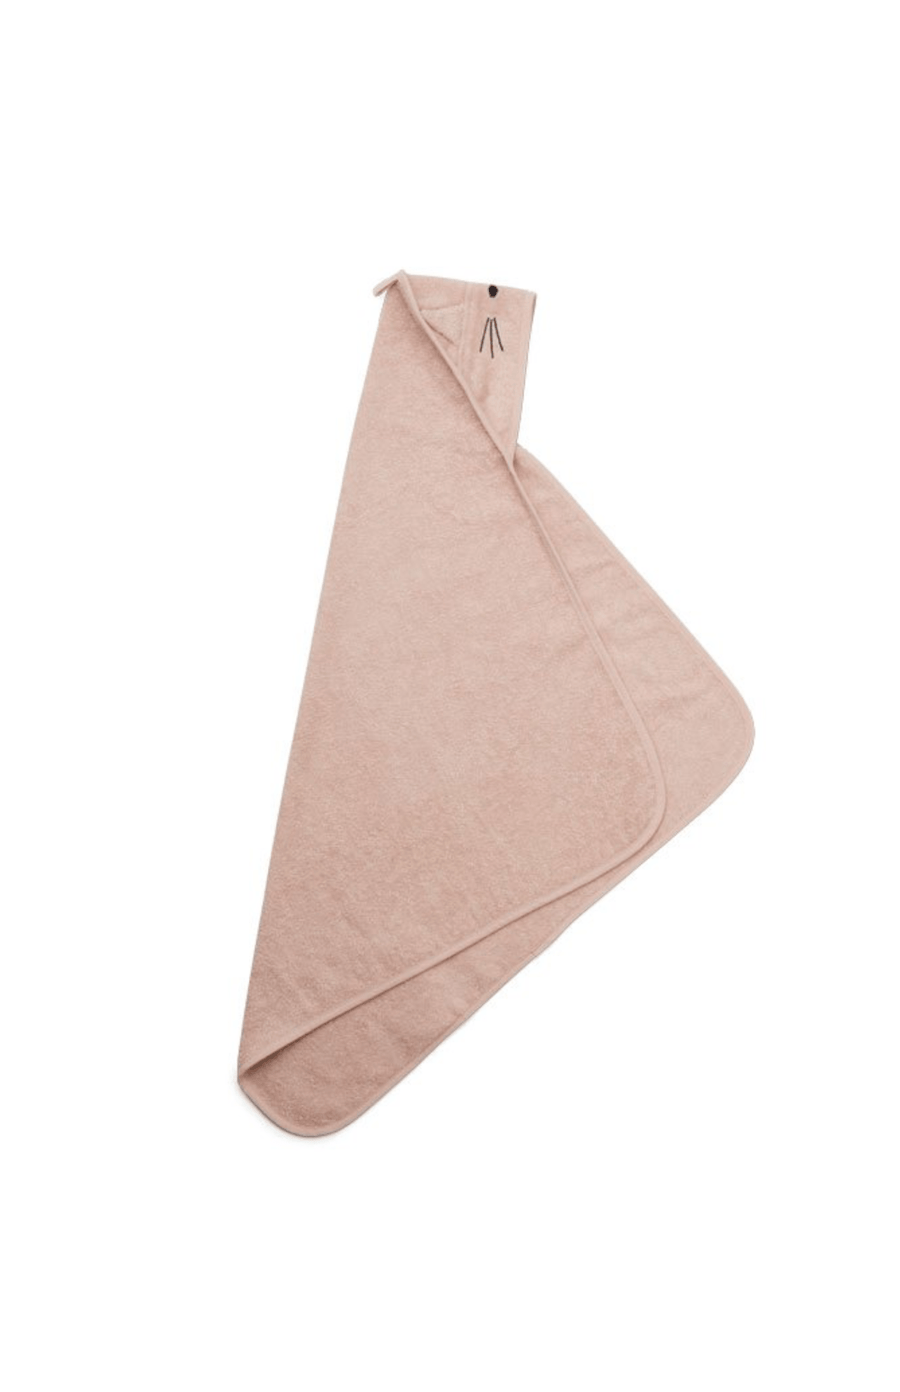 Liewood Large Hooded Towel - Cat Rose